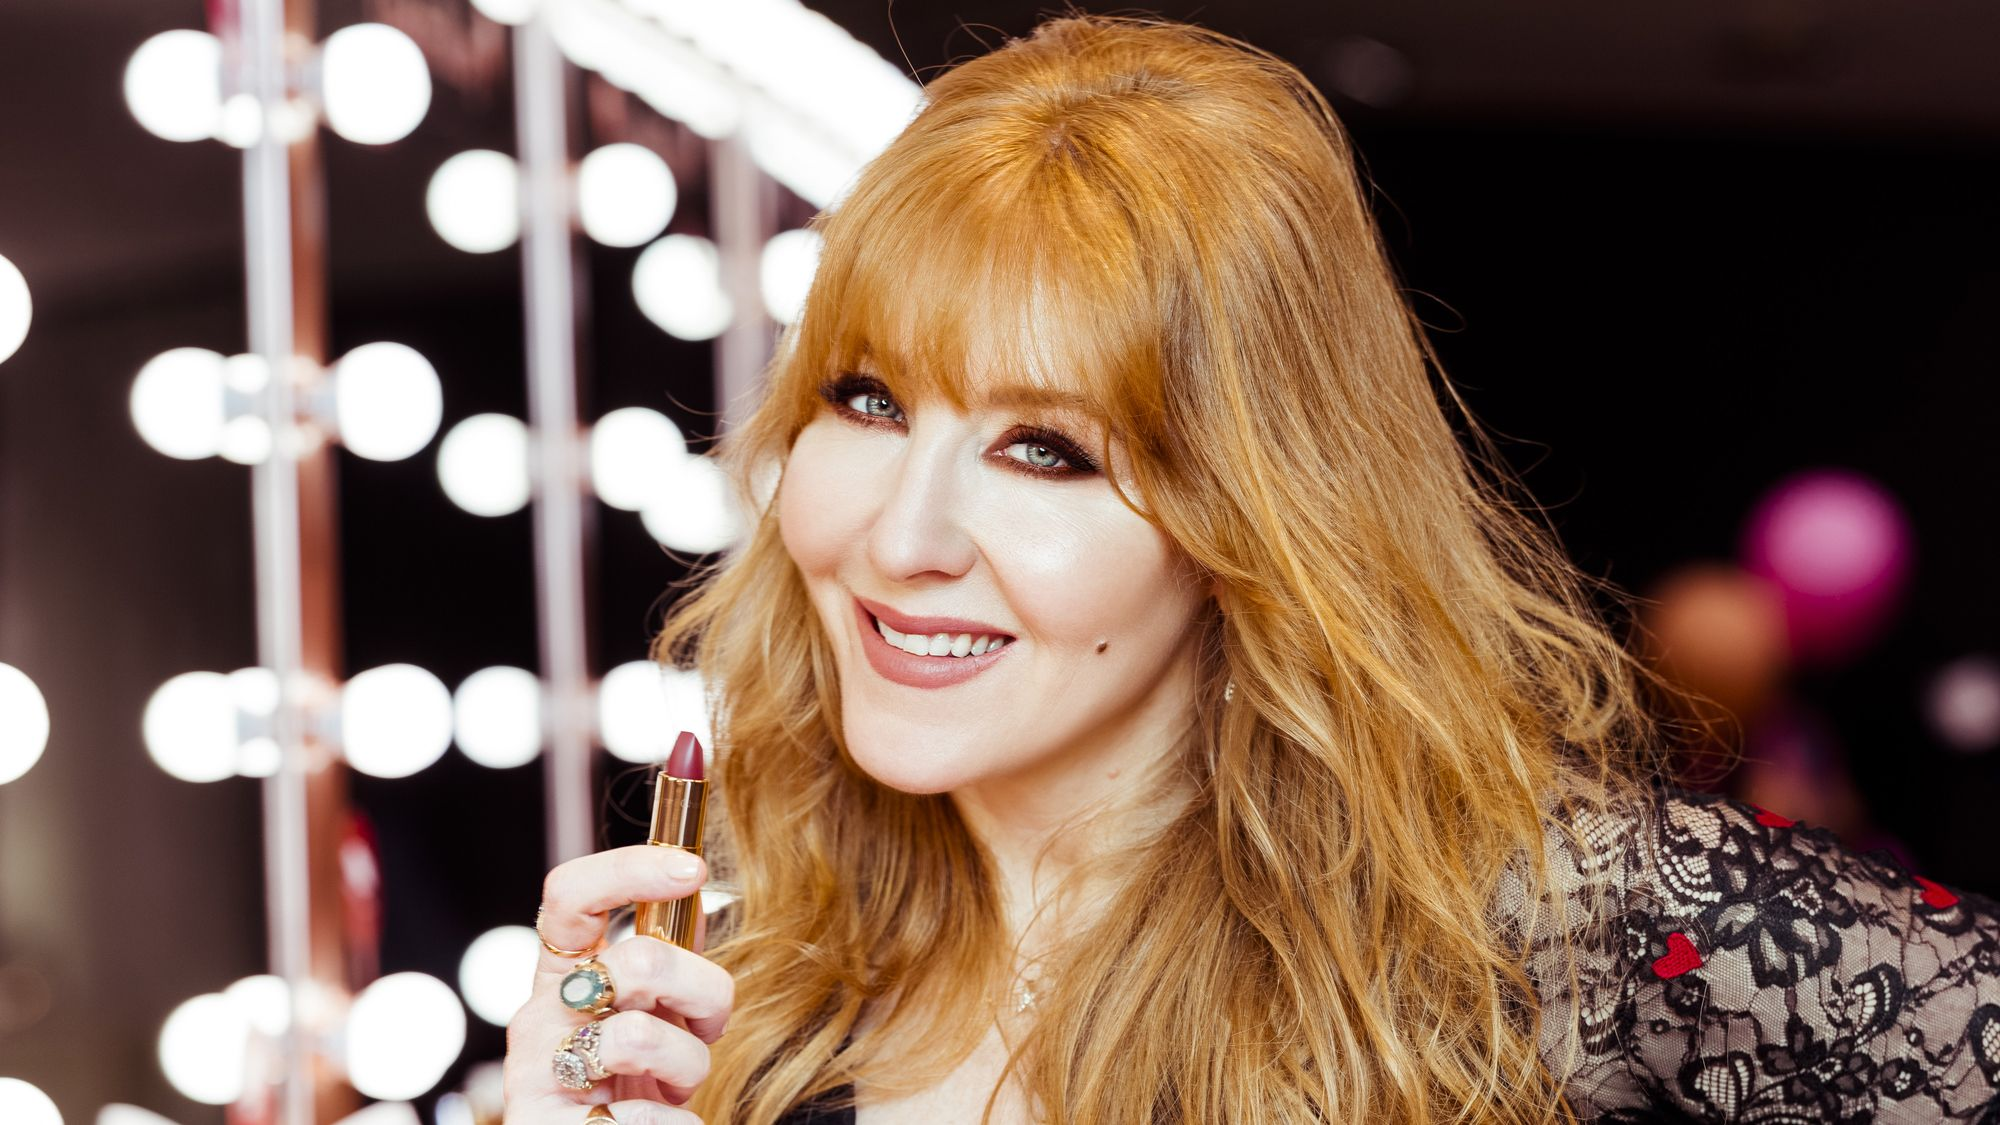 charlotte tilbury launch glowgasm collection